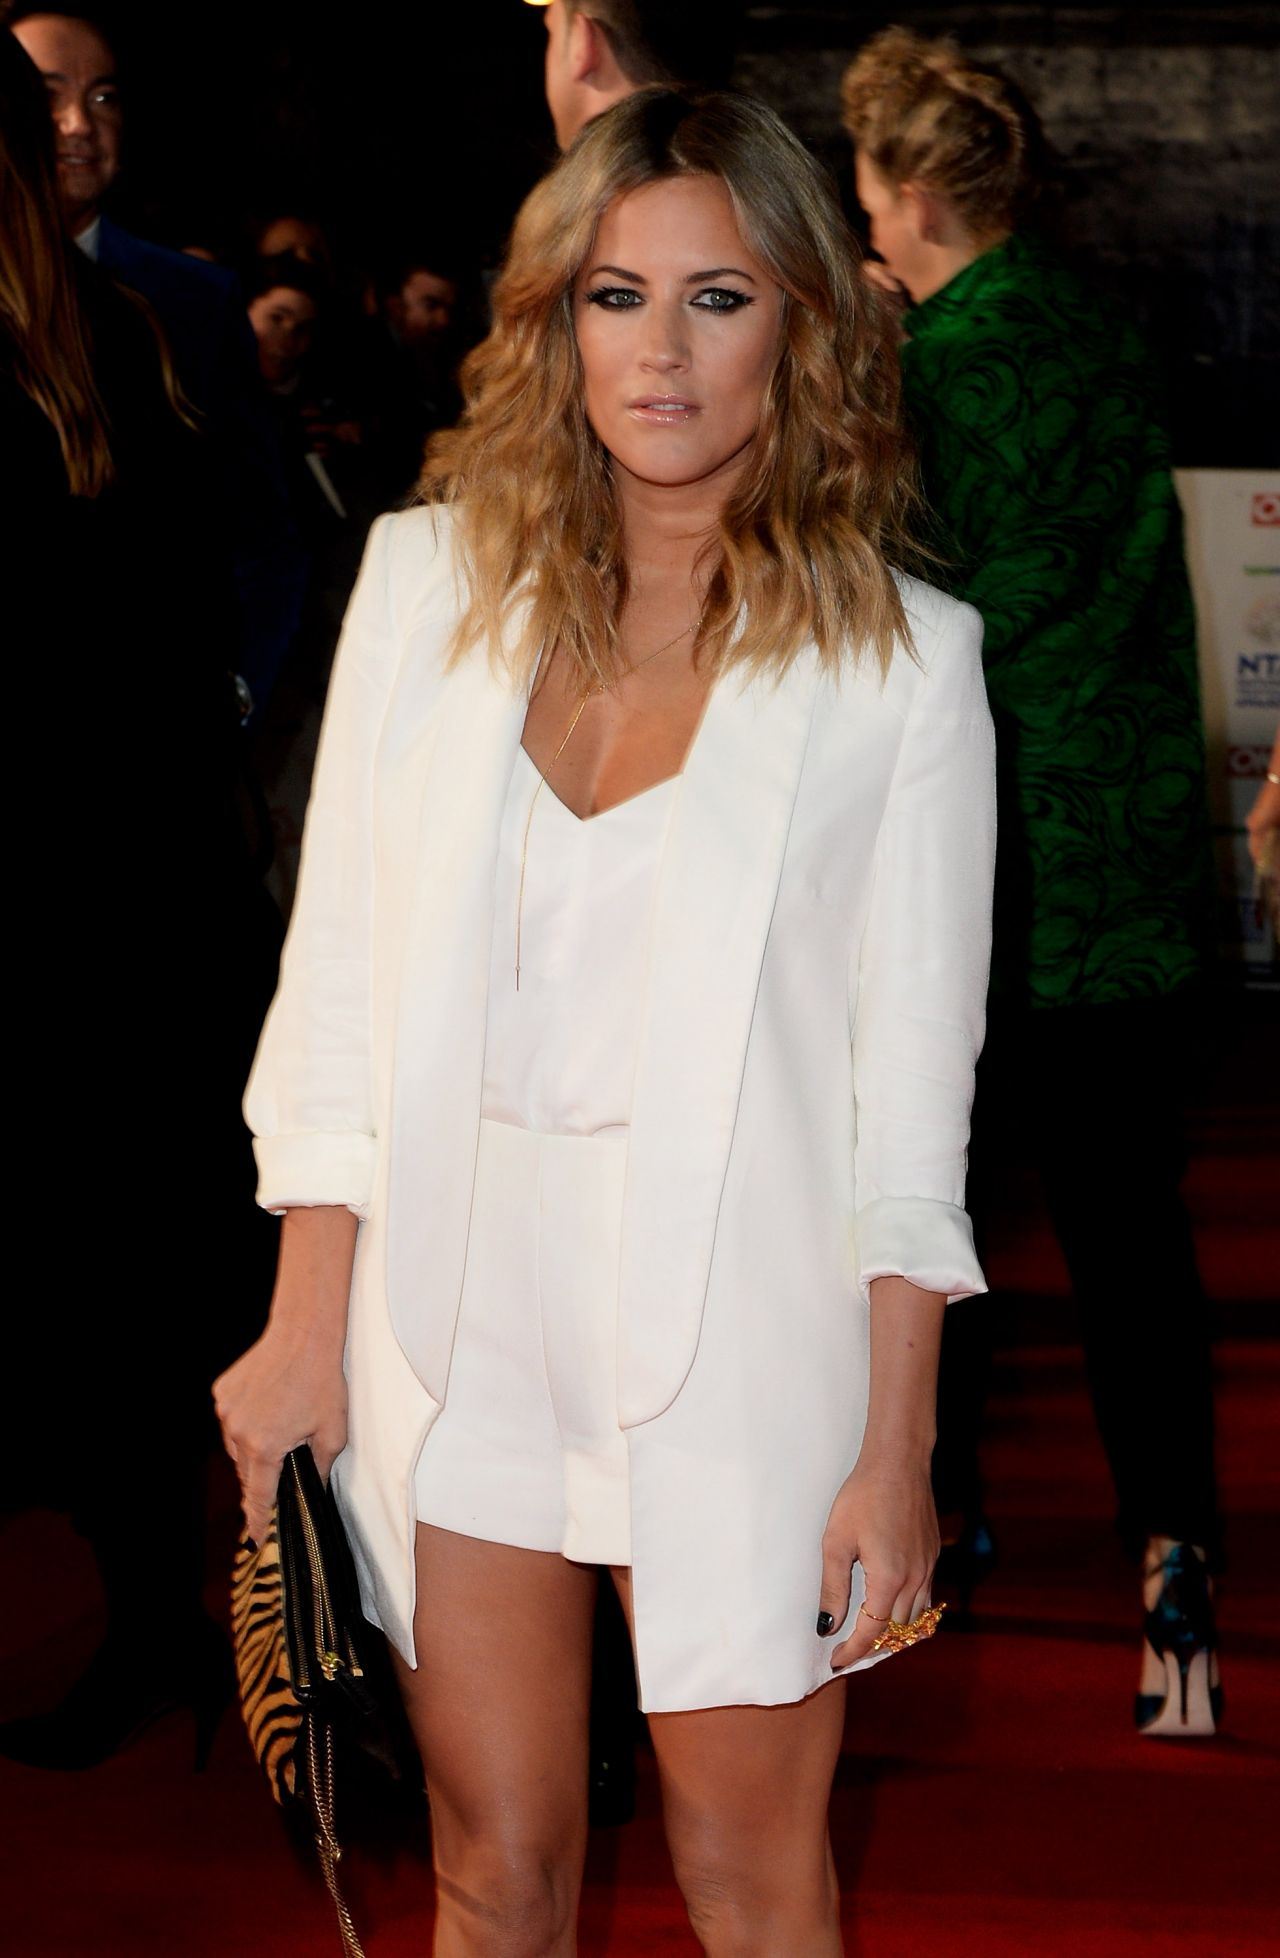 Caroline Flack - National Television Awards in London, January 2014